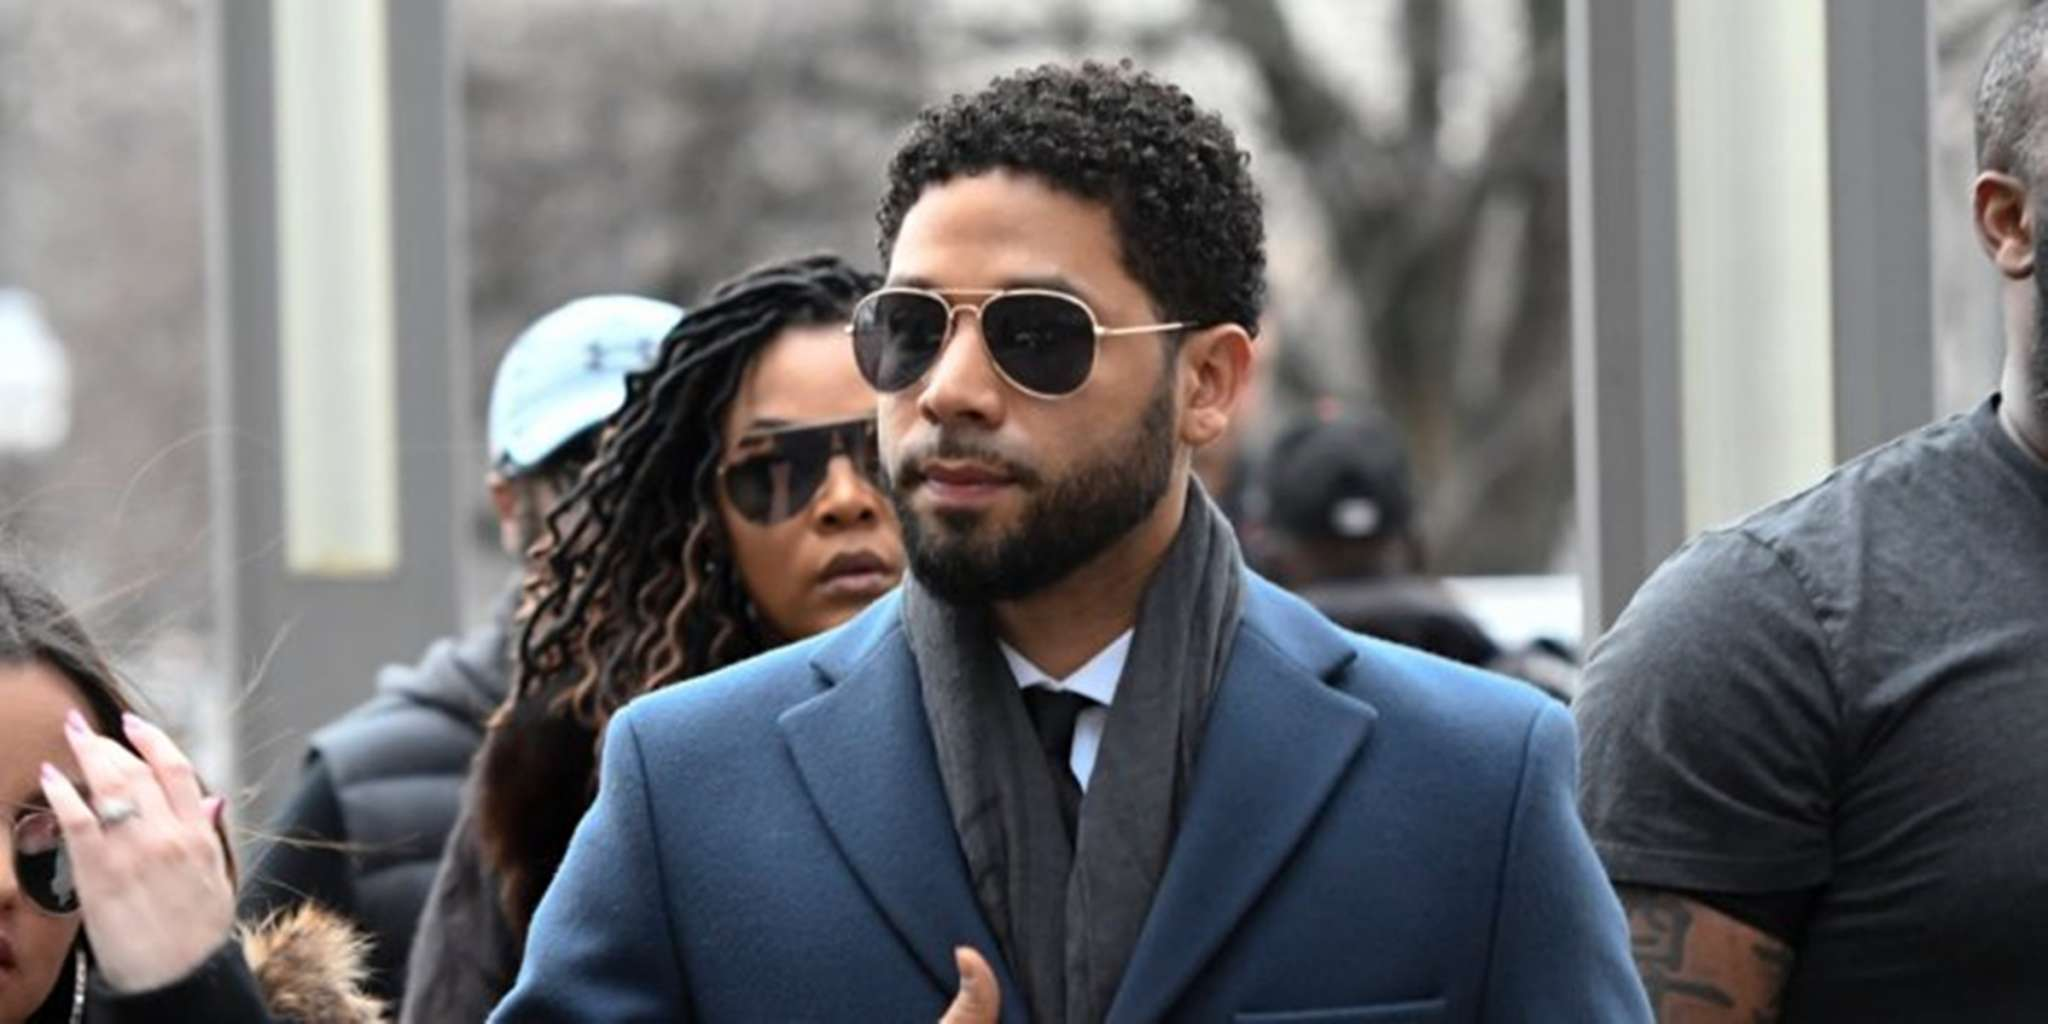 Jussie Smollett Empire Charges Dropped